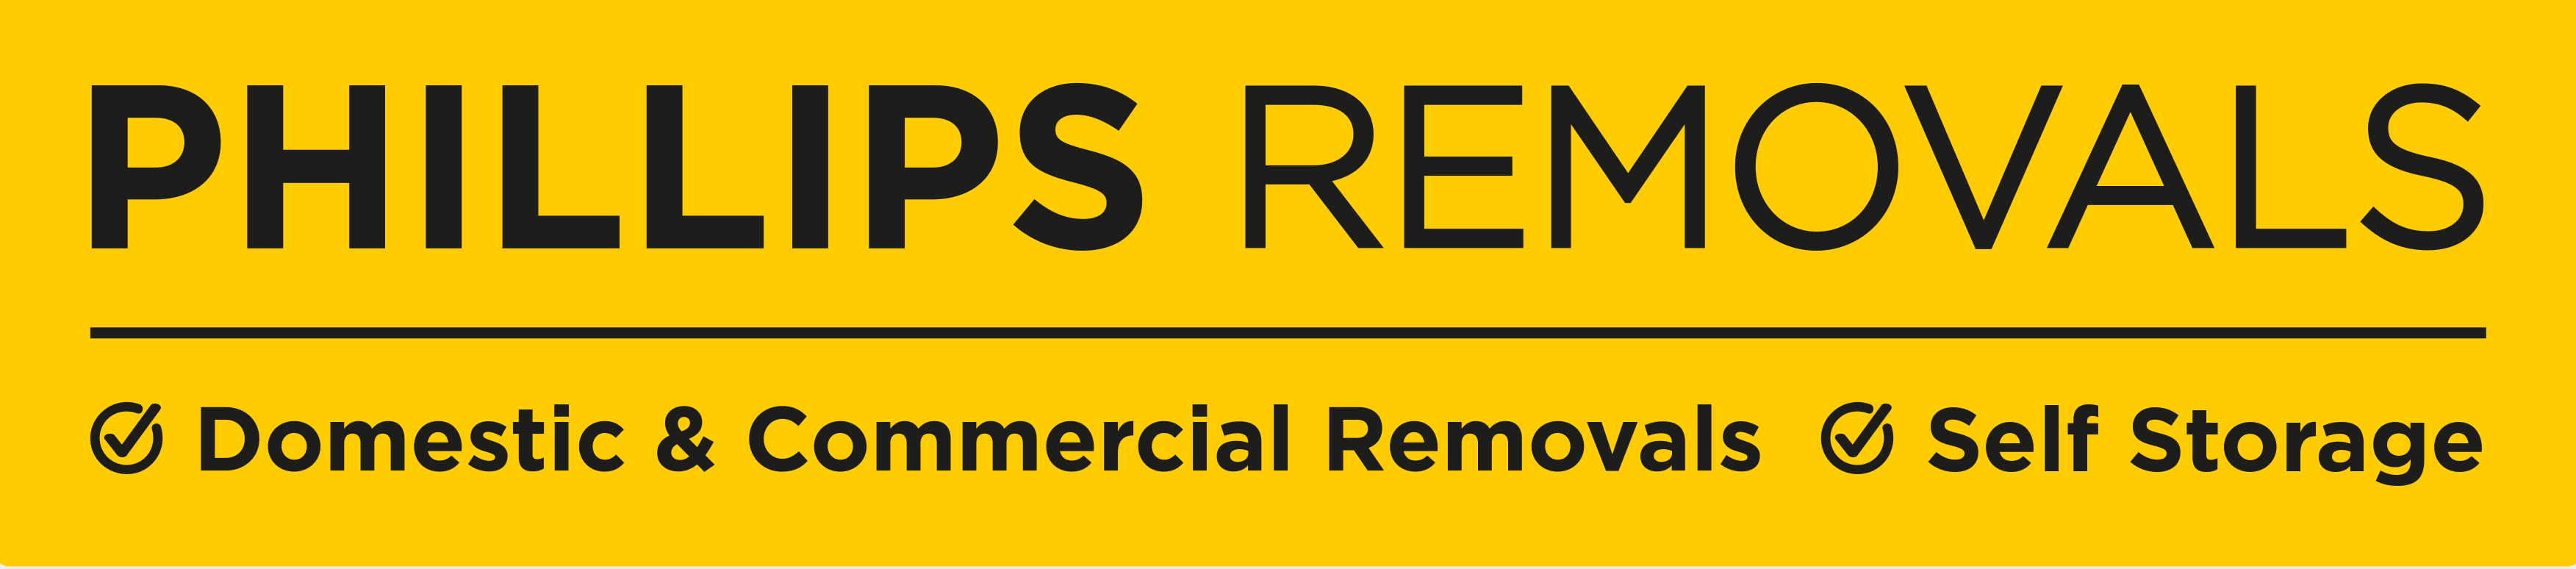 Read Phillips Removals  Reviews